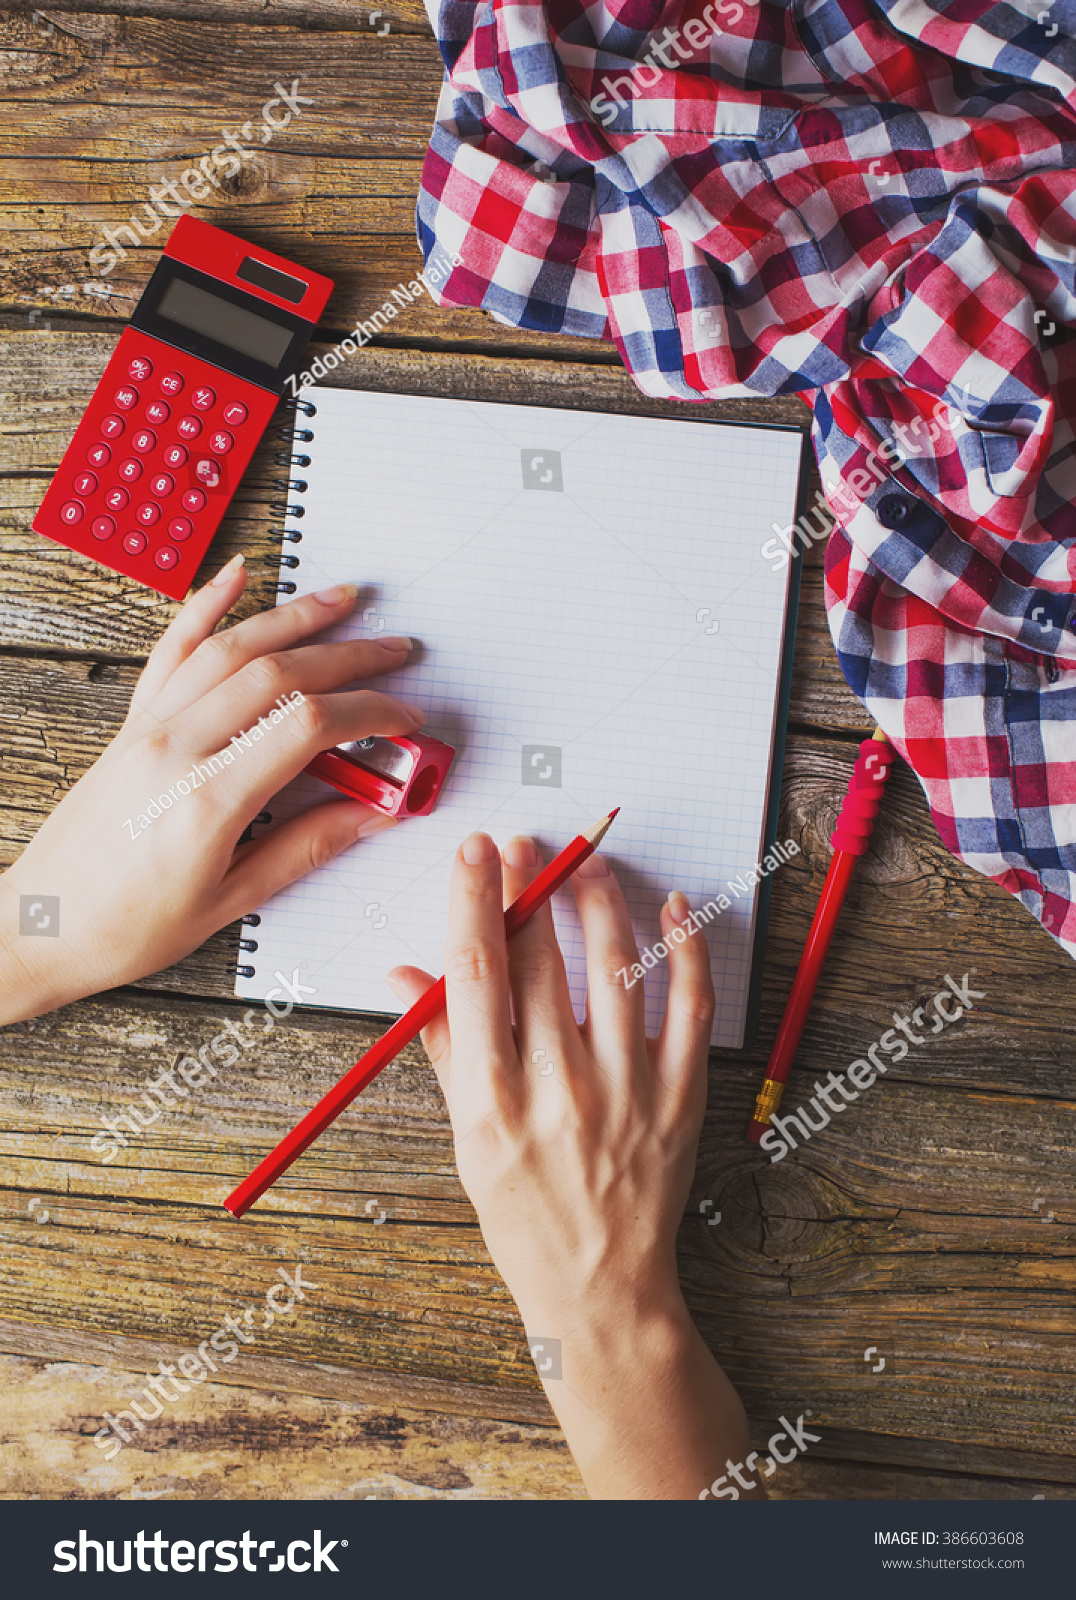 Desk School Supplies Action Hands During Stock Photo